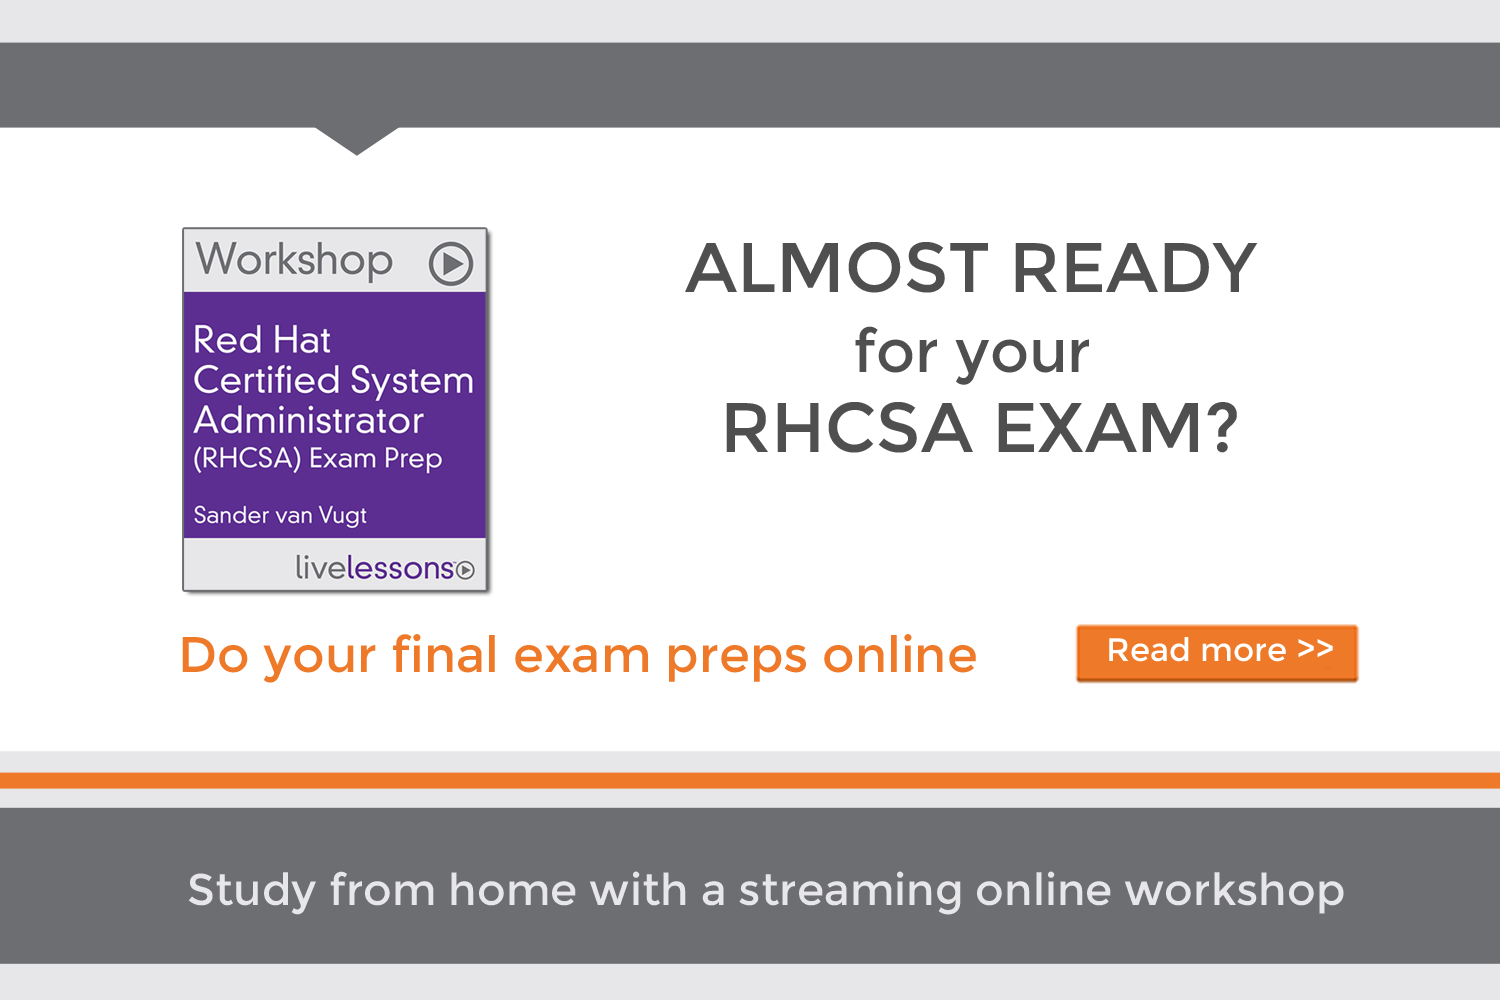 prepare-for-rhcsa-exams-with-online-exams